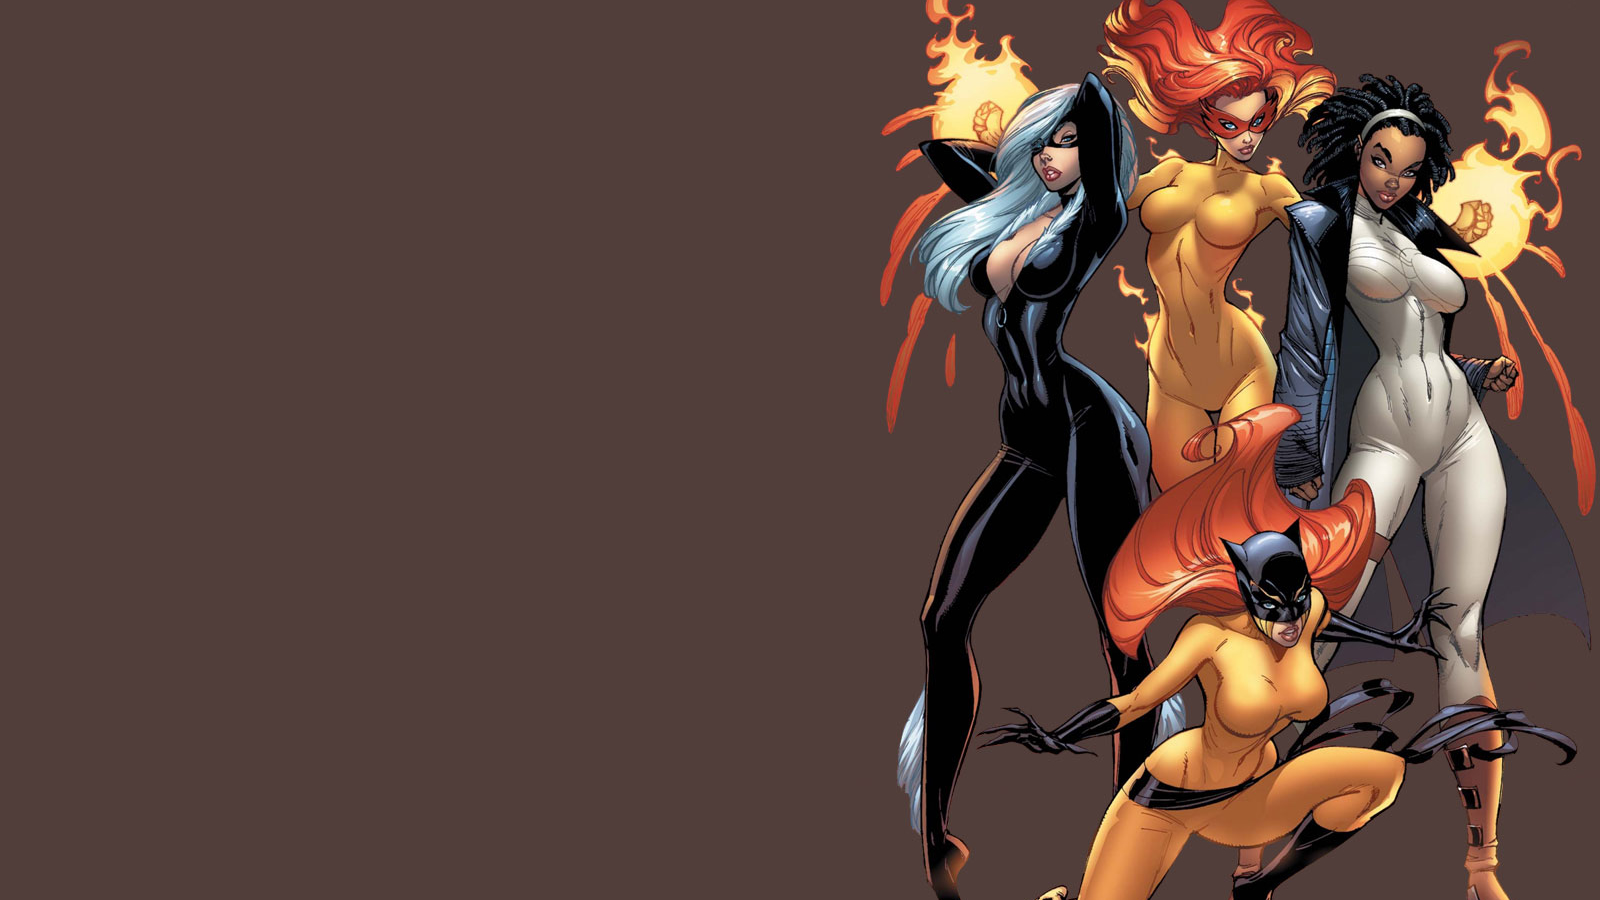 Marvel girls wallpaper erotica picture